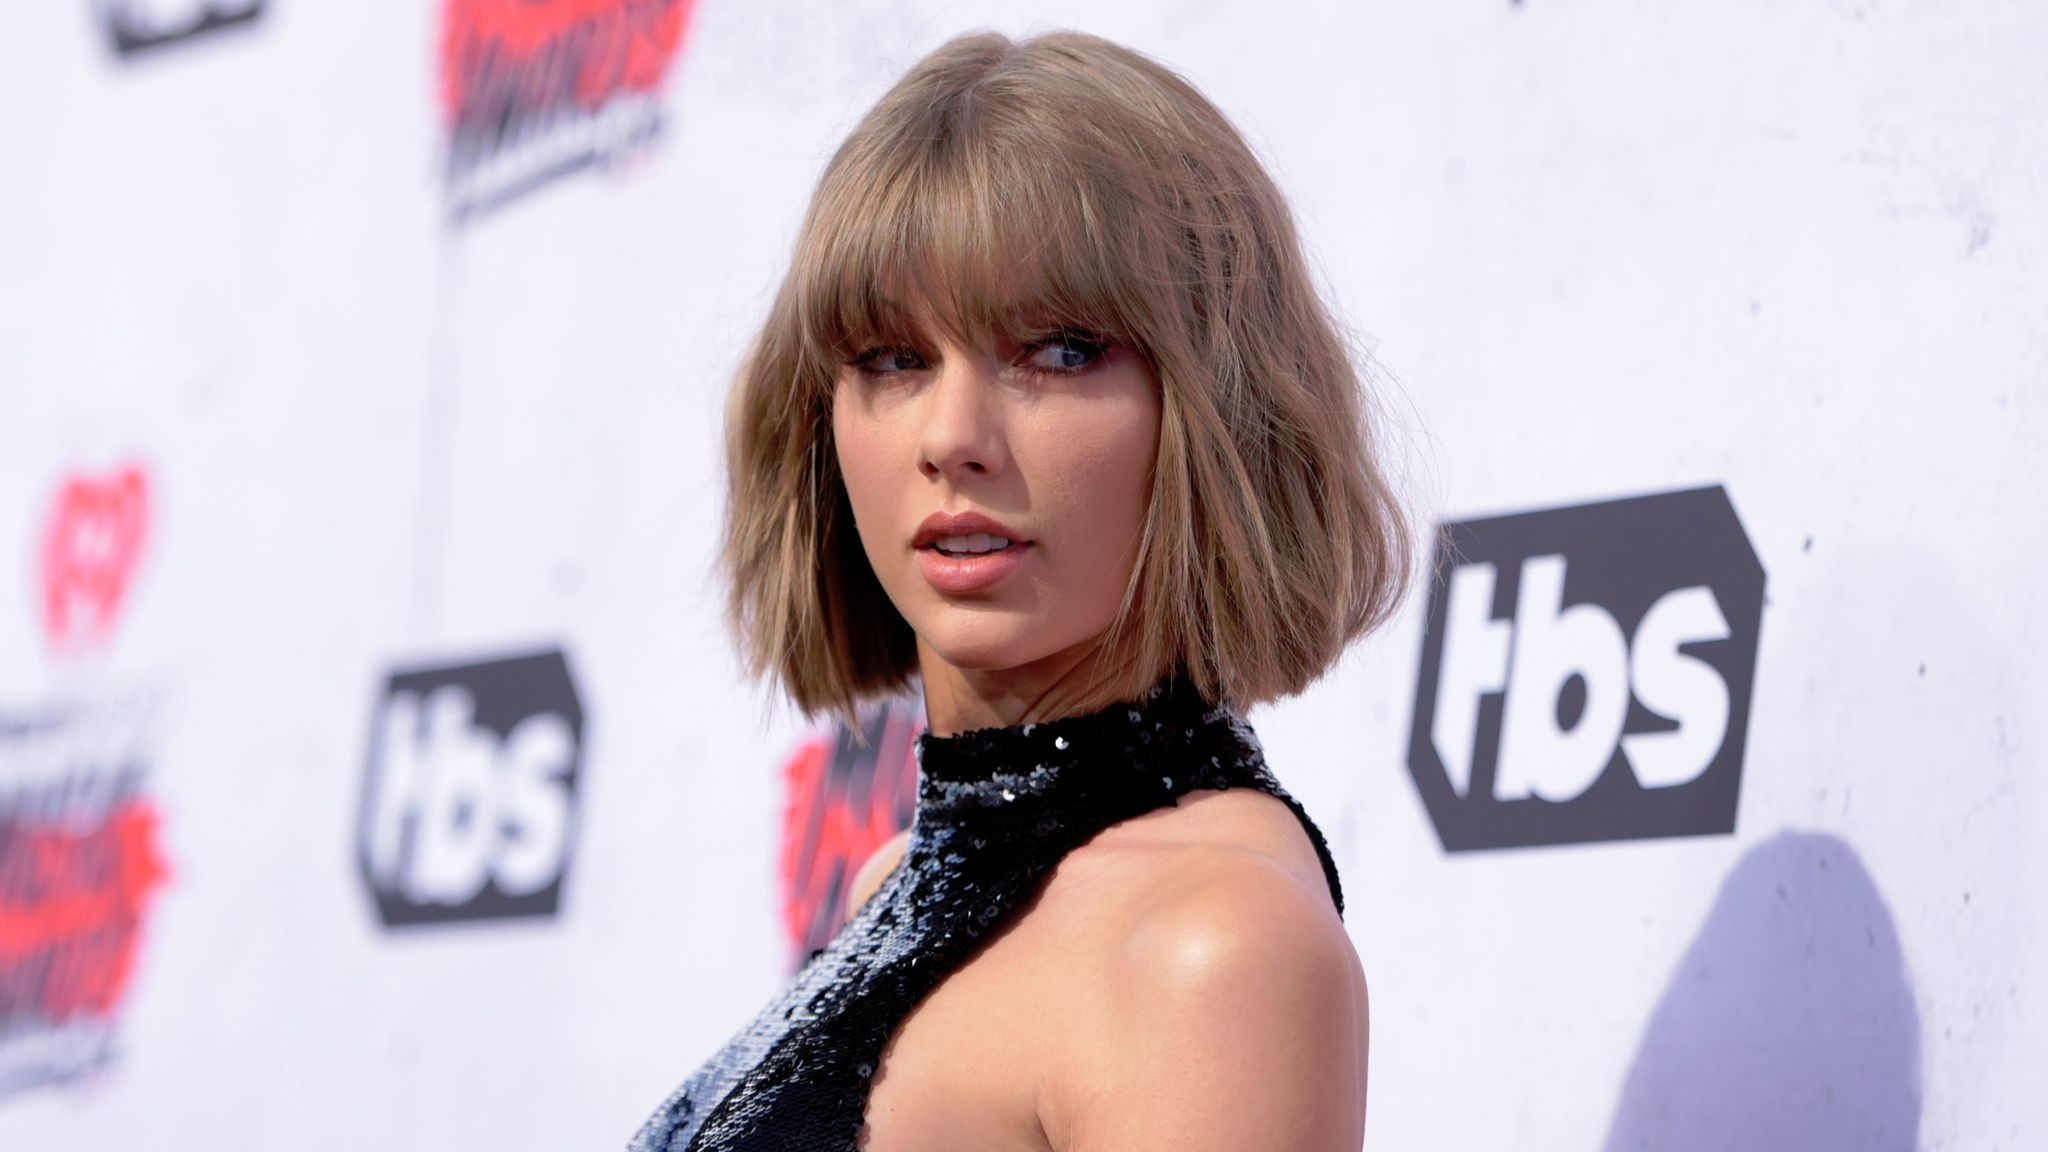 Taylor Swift's trial lawyer accuses Denver DJ of seeking money, fame